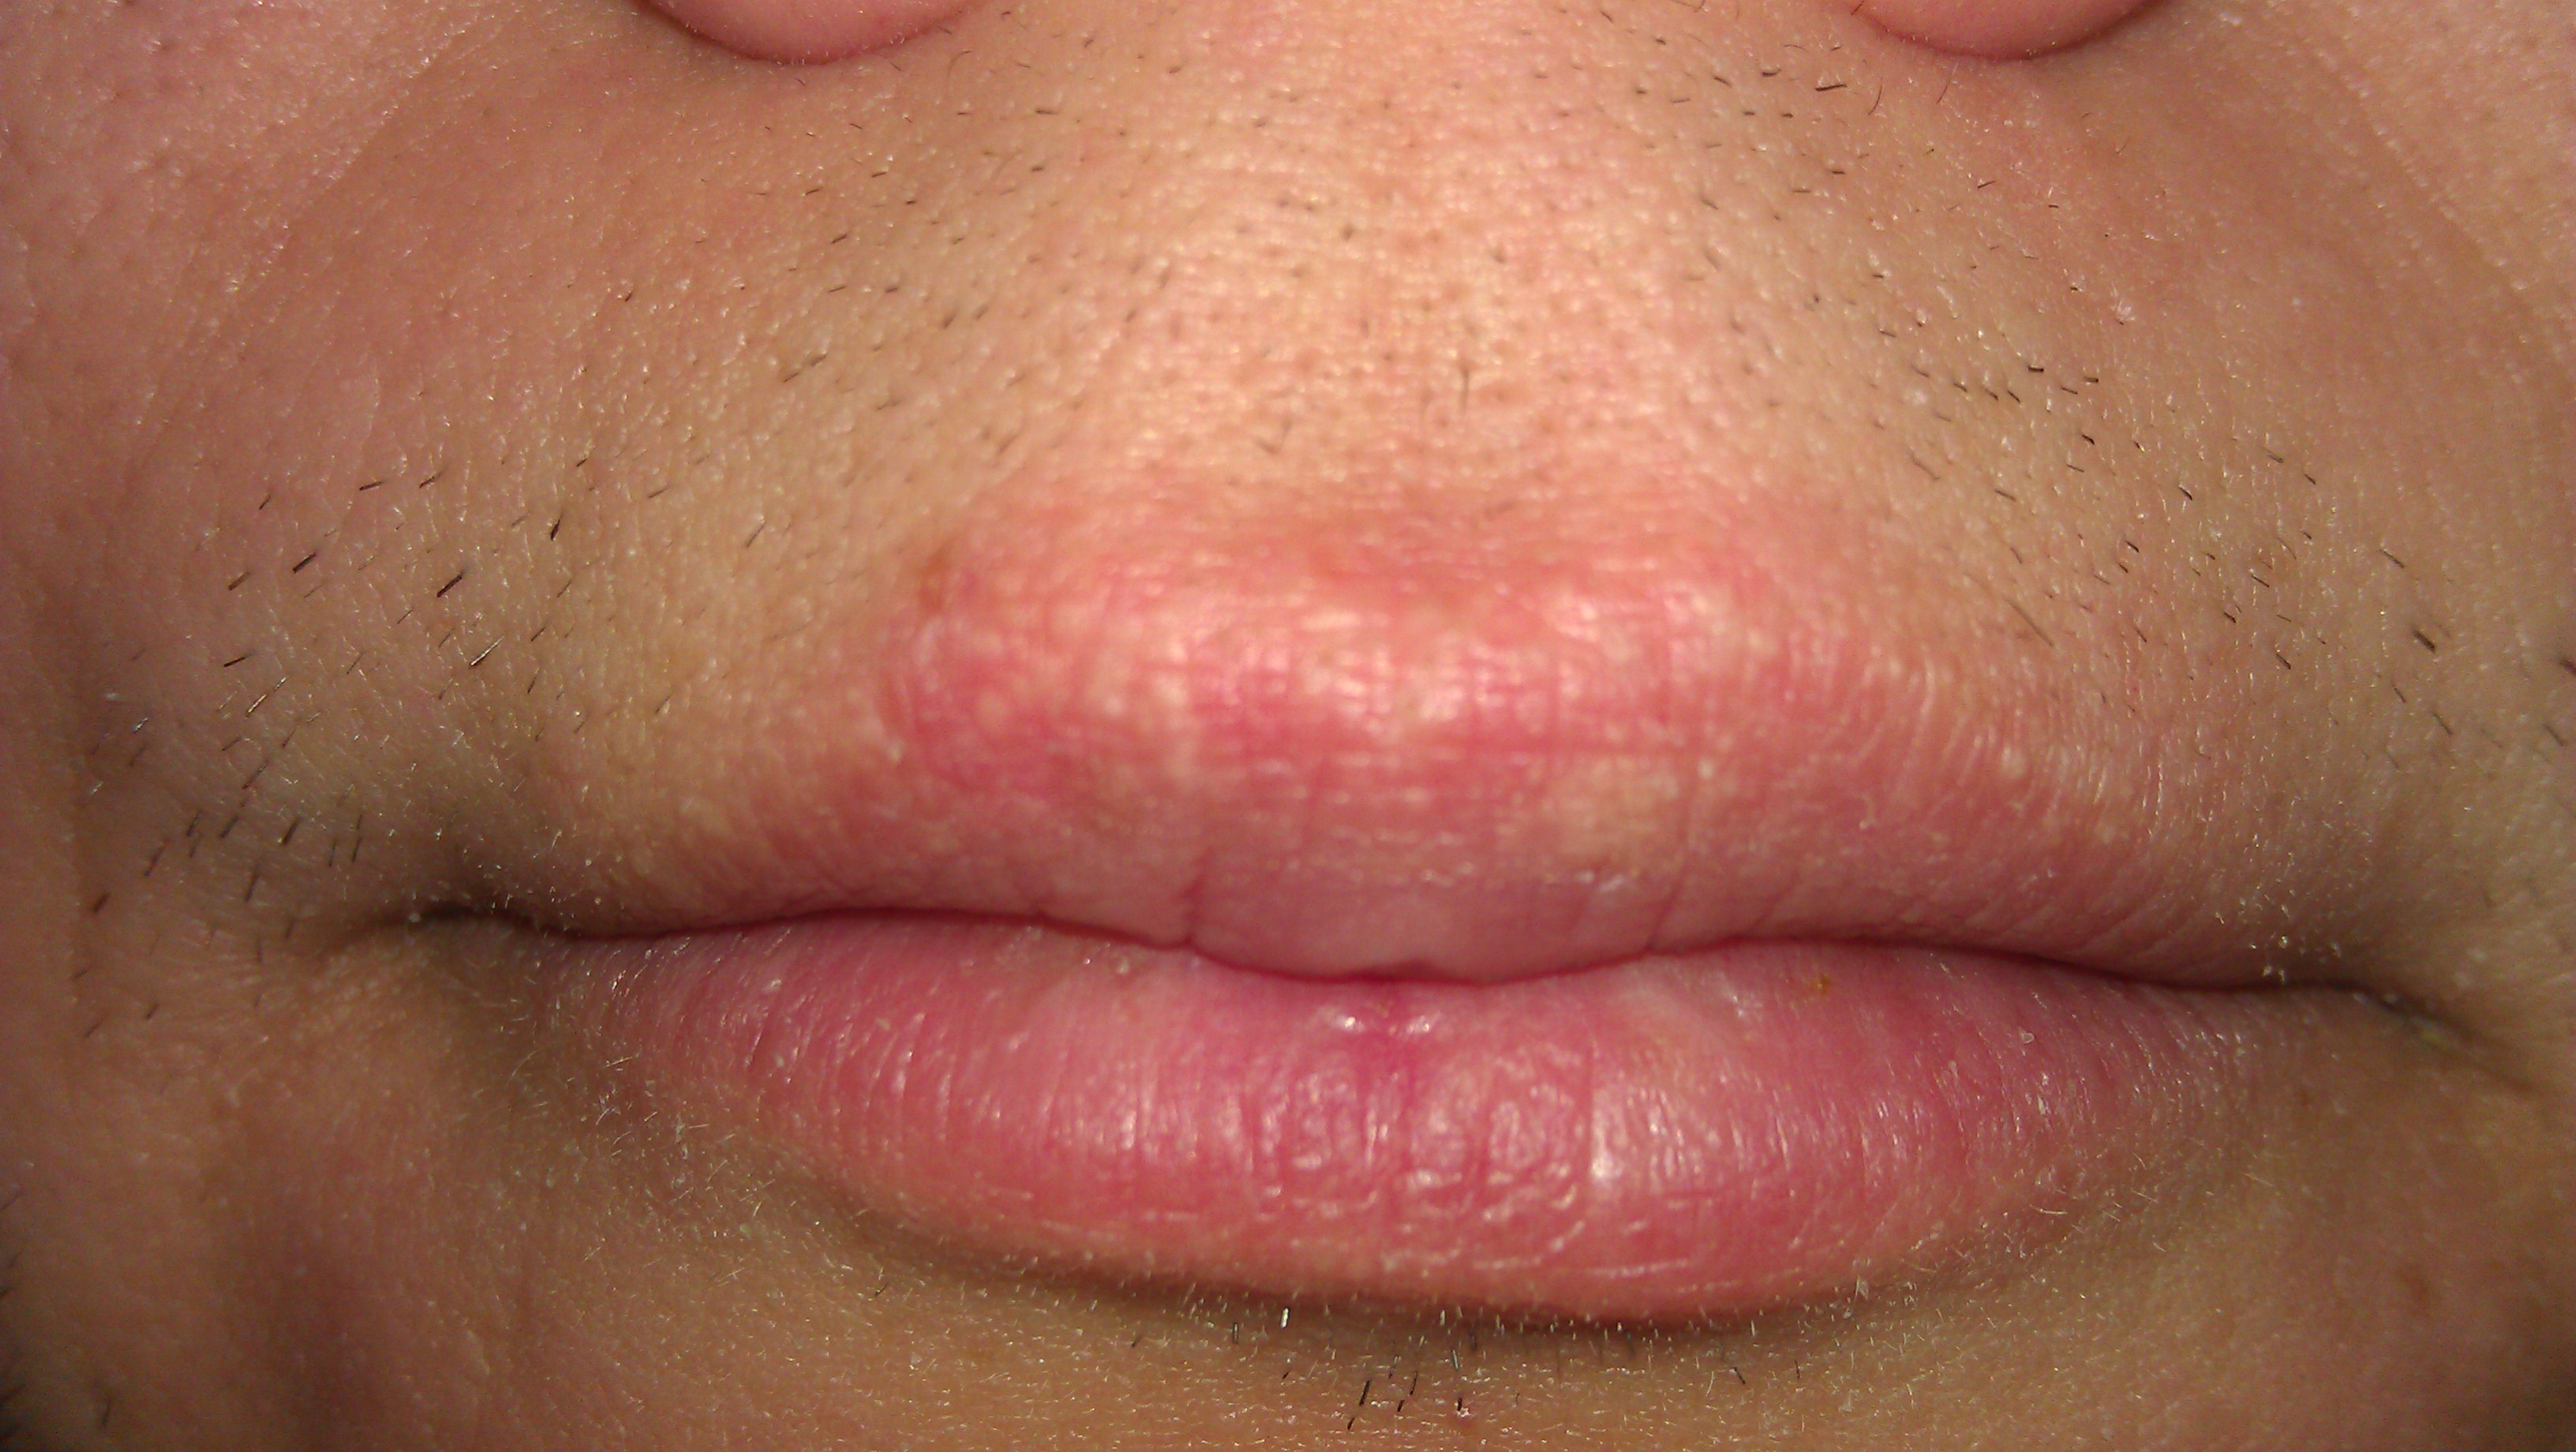 Herpes Corner Lips Here are some pictures: